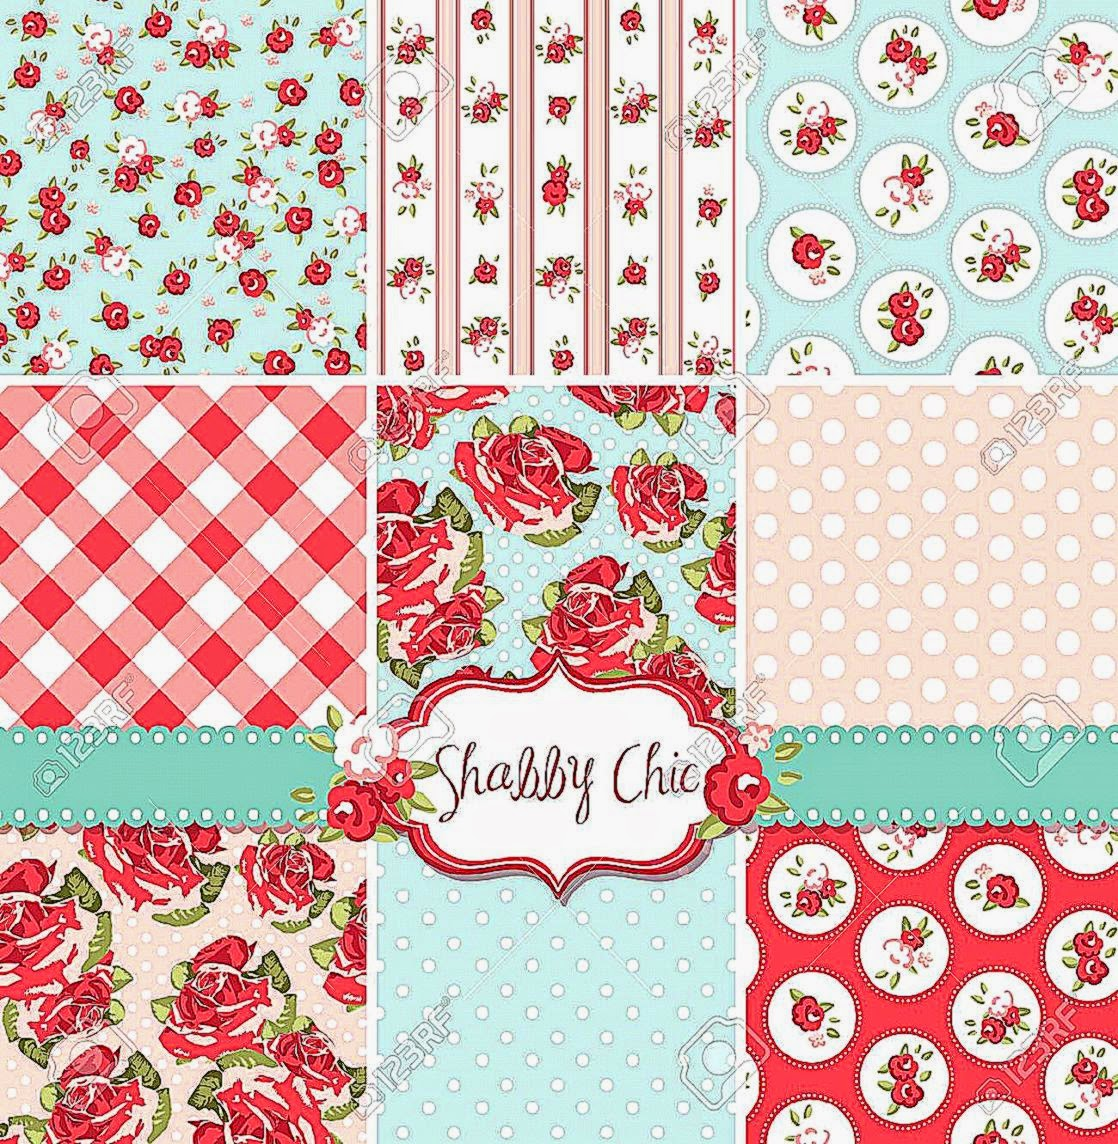 Top Wallpaper Macbook Chic - shabby-chic-rose-patterns-and-seamless-backgrounds-ideal-for  Image_882223.jpg